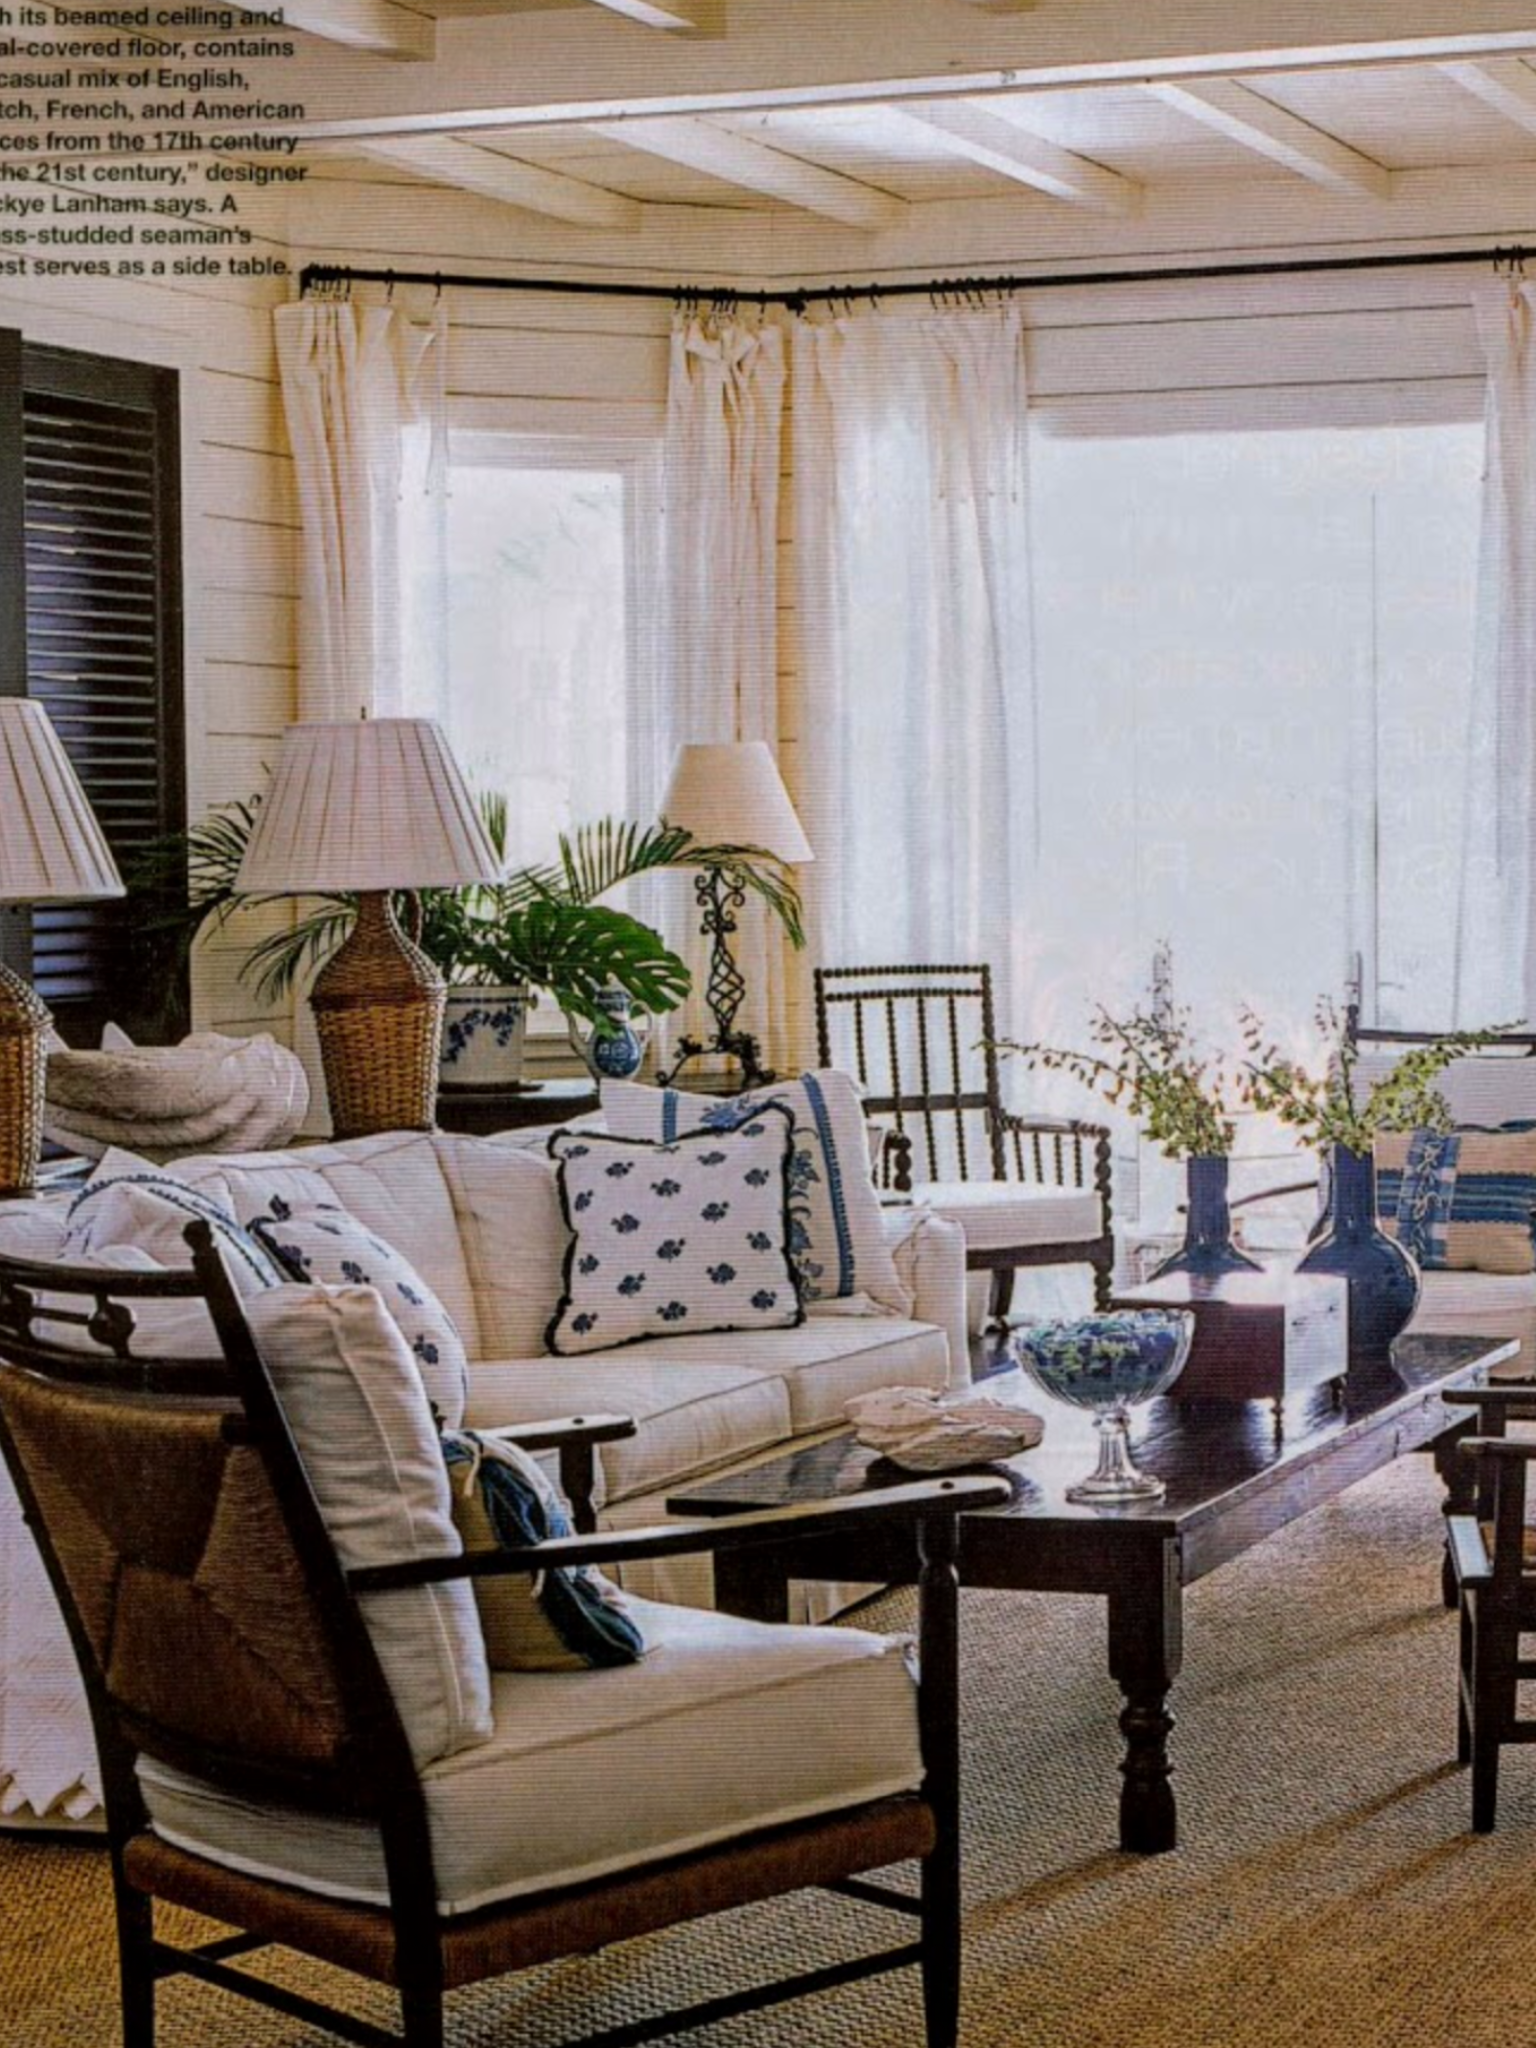 West Indies Interior Decorating Style British Colonial Beach House British Colonial Looks In